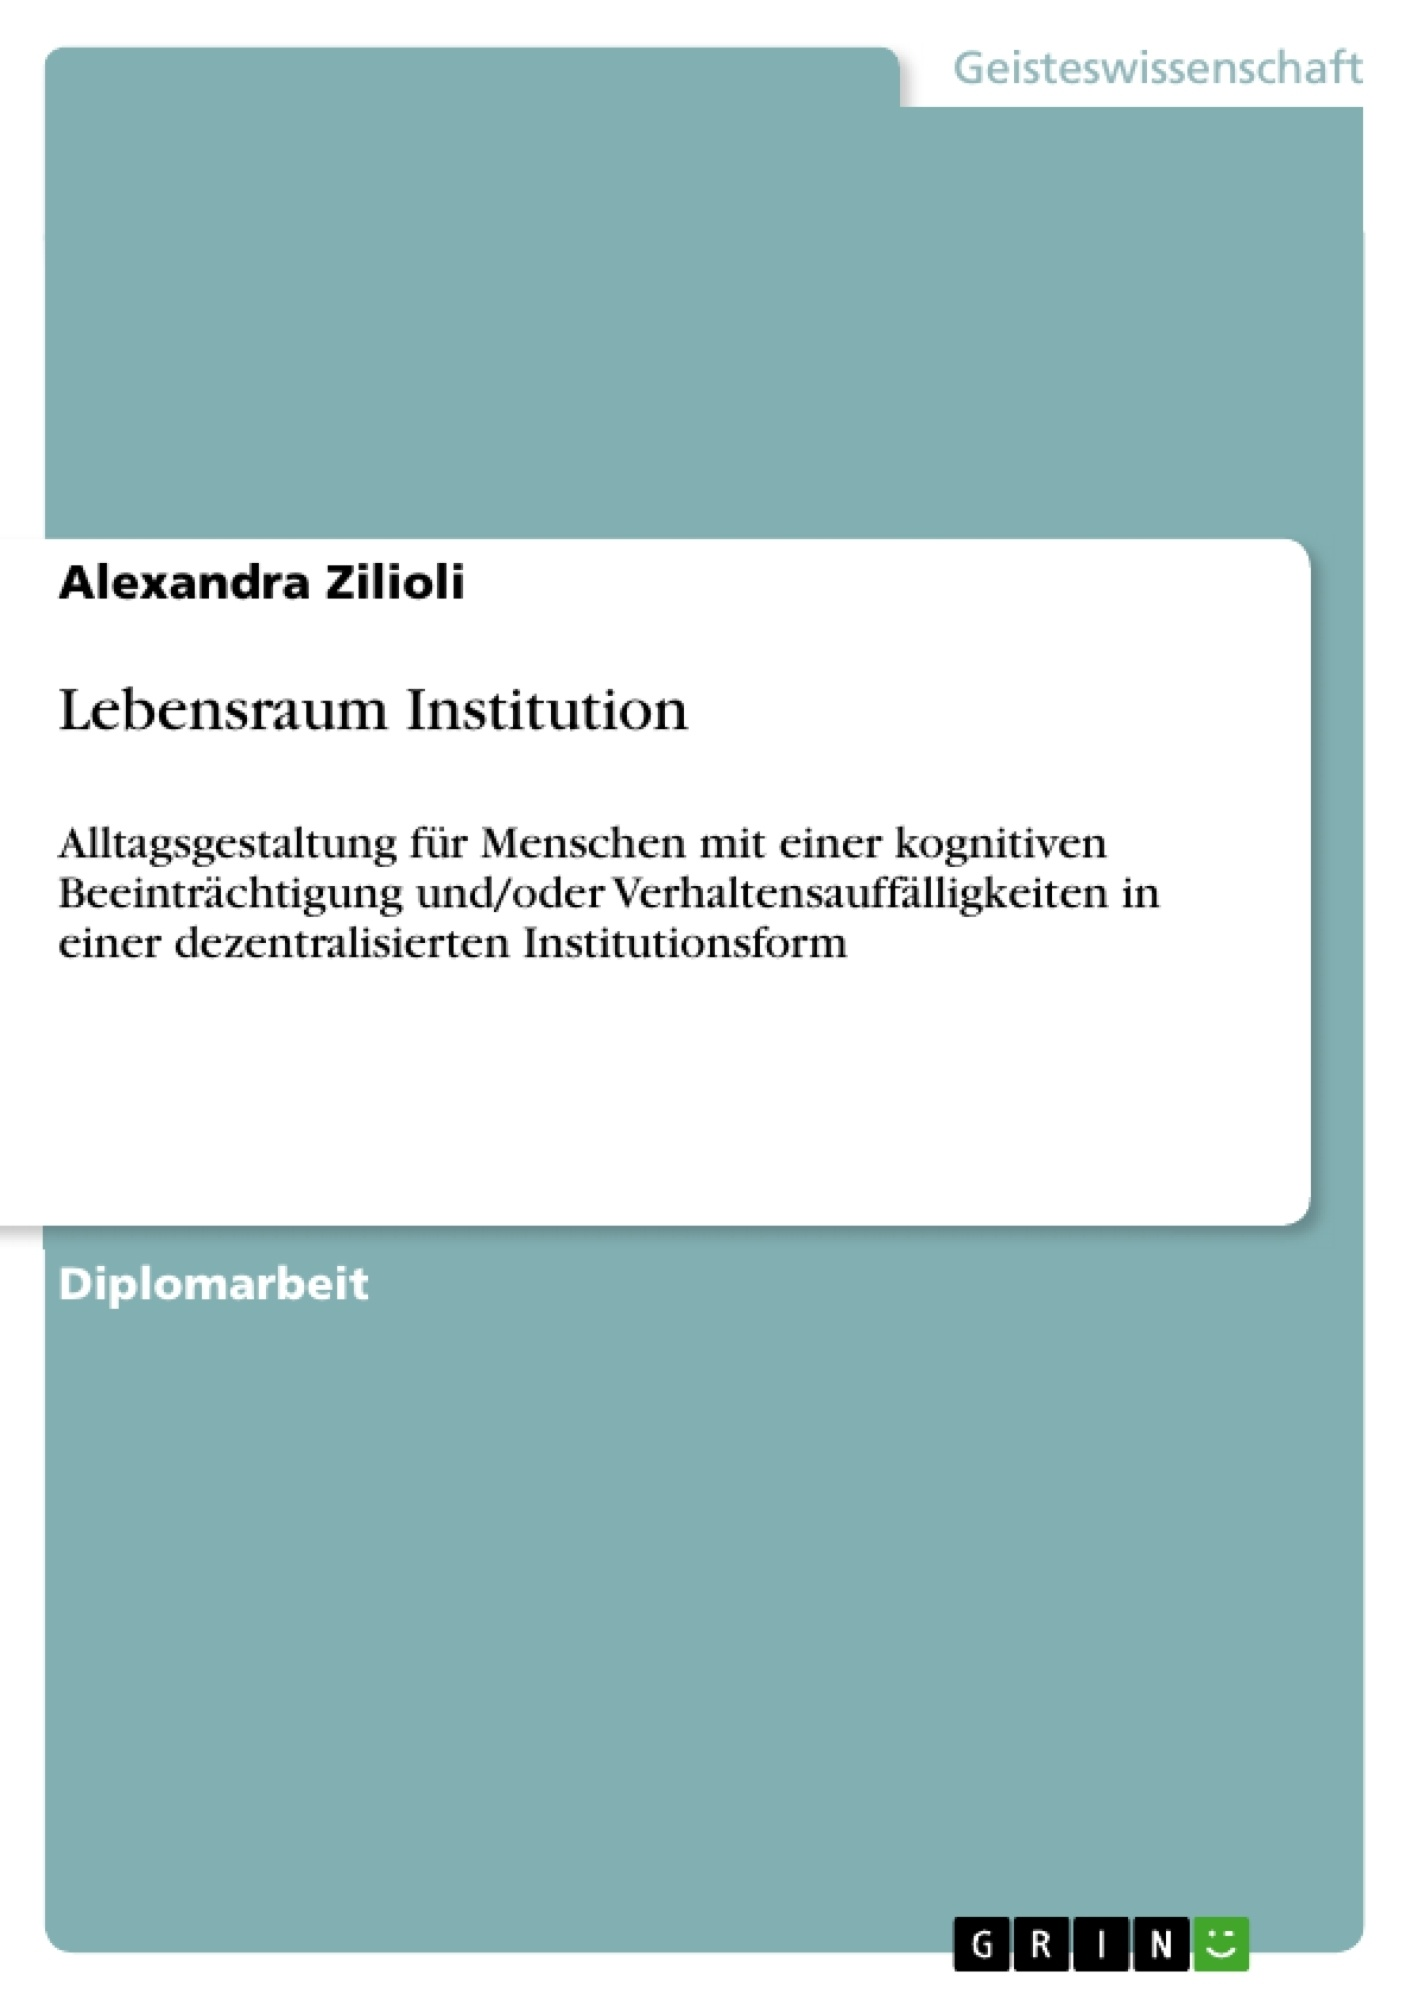 Titel: Lebensraum Institution